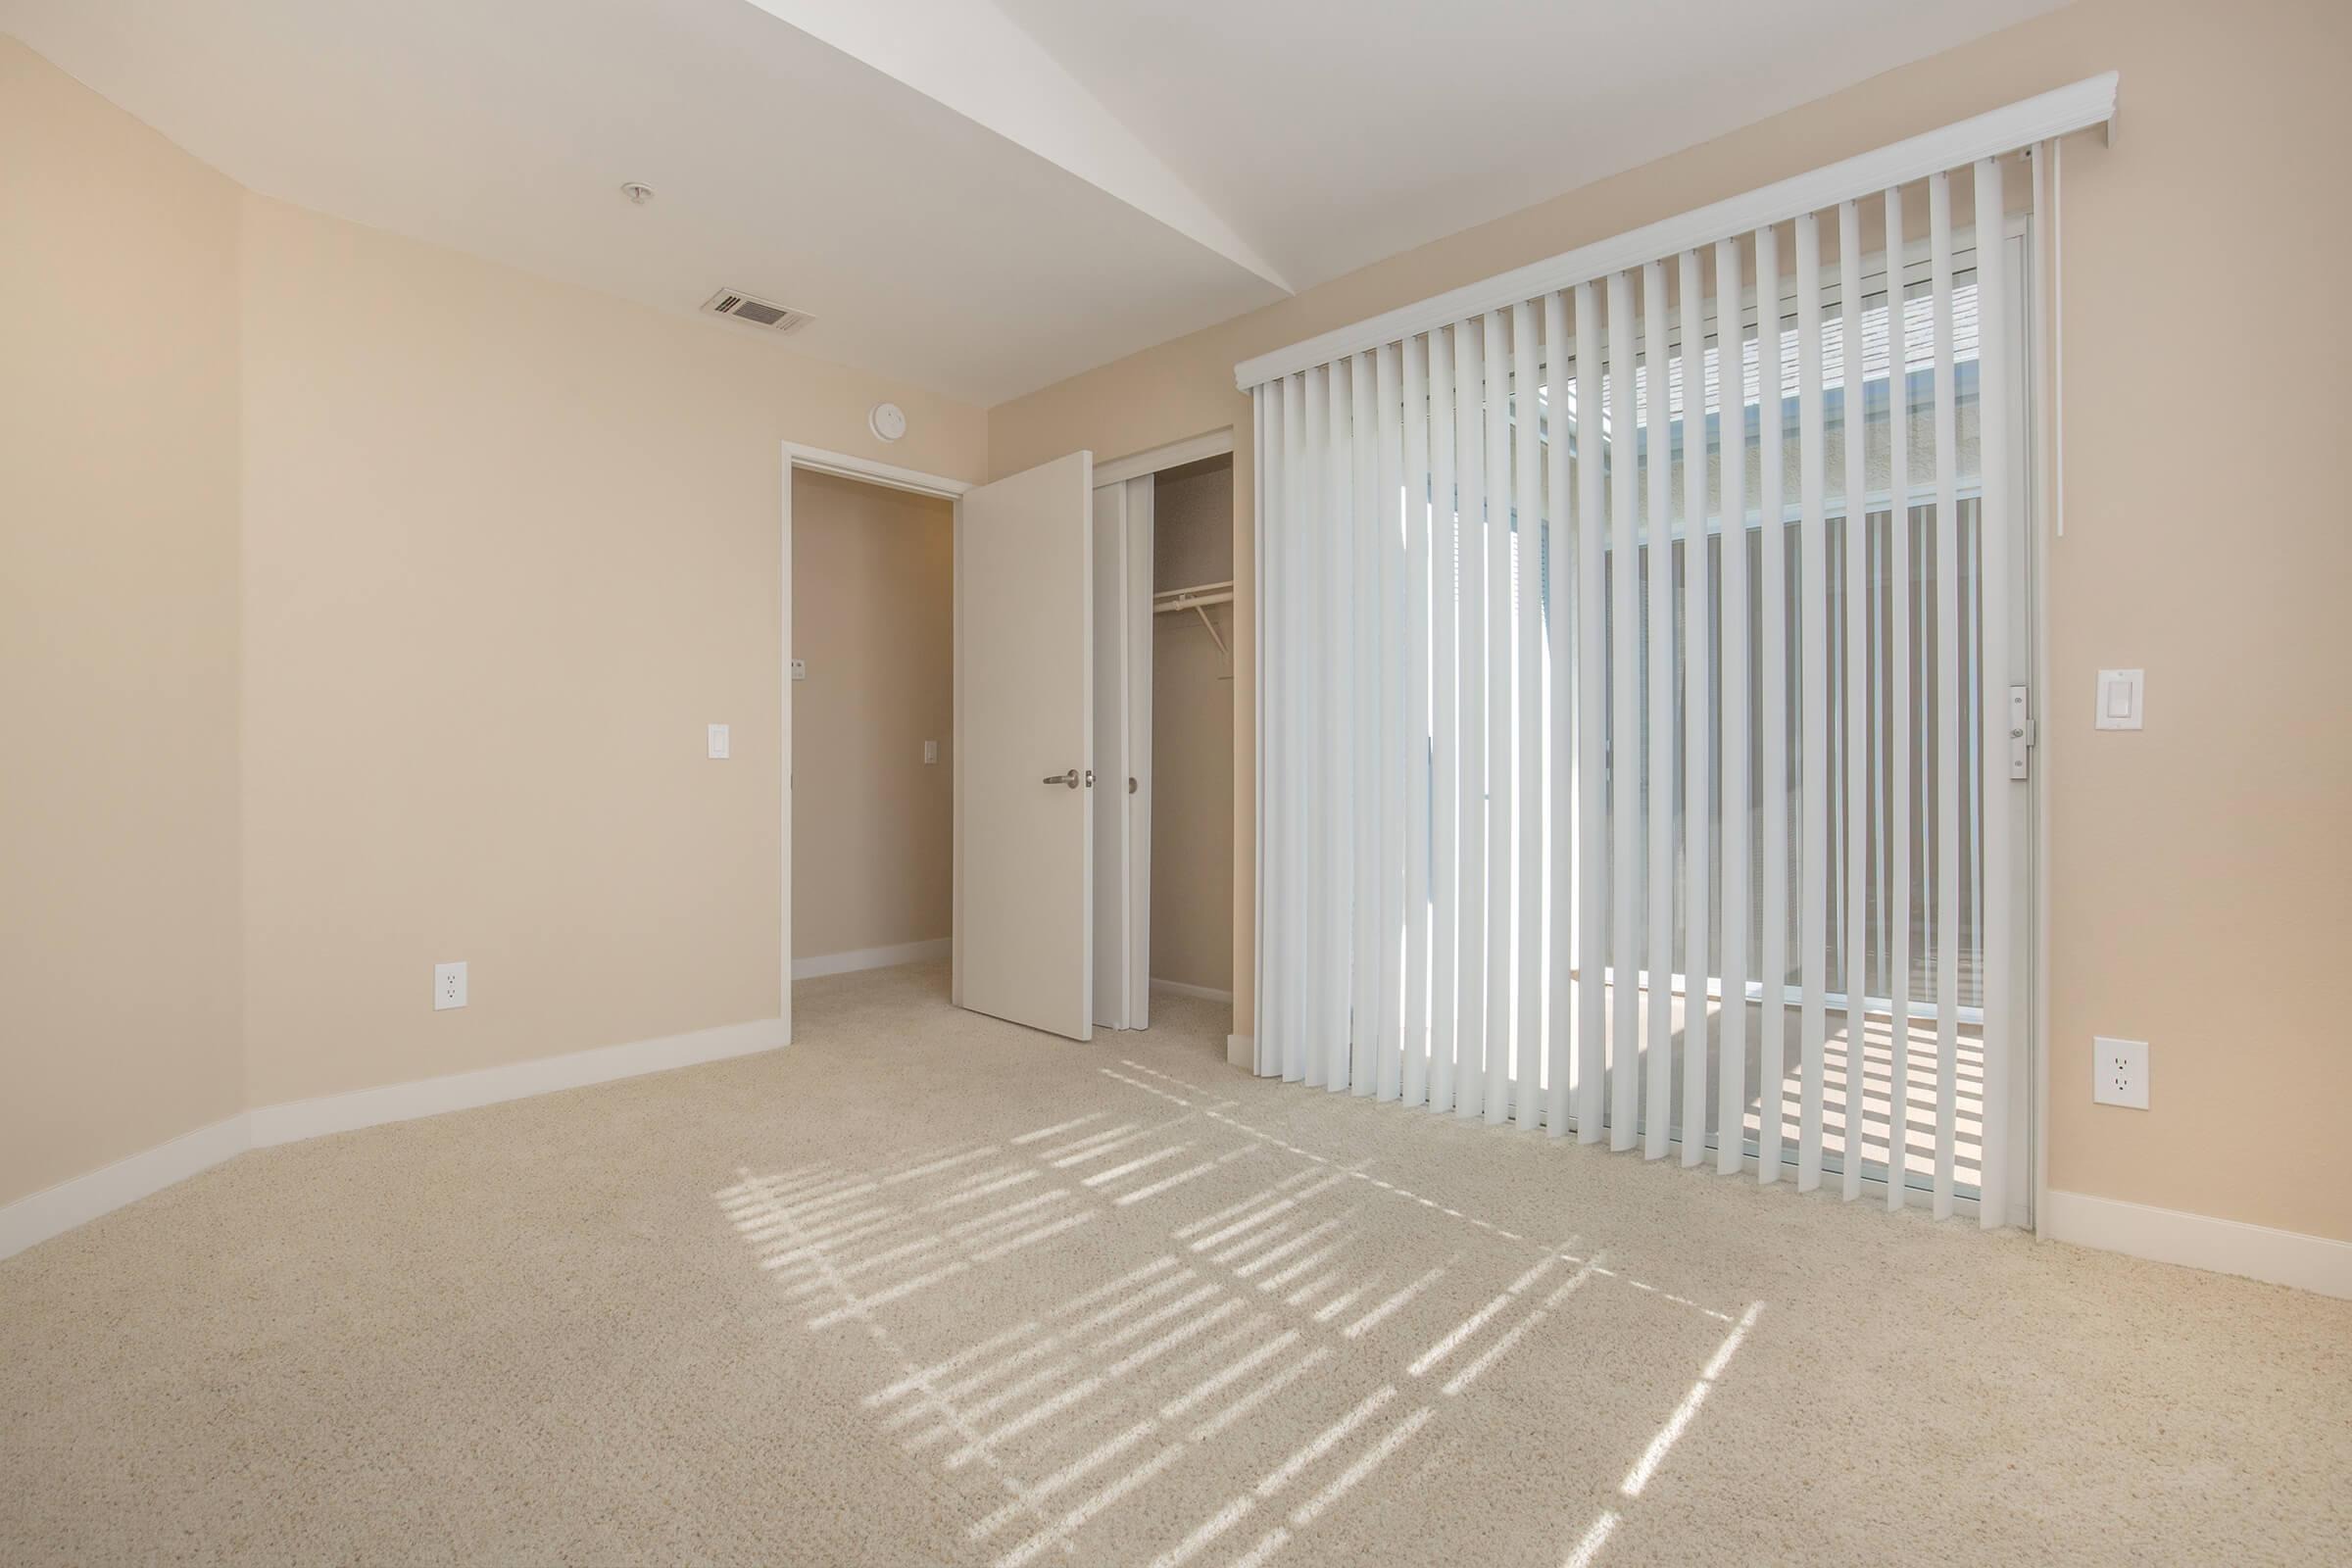 Second bedroom with glass sliding doors to patio